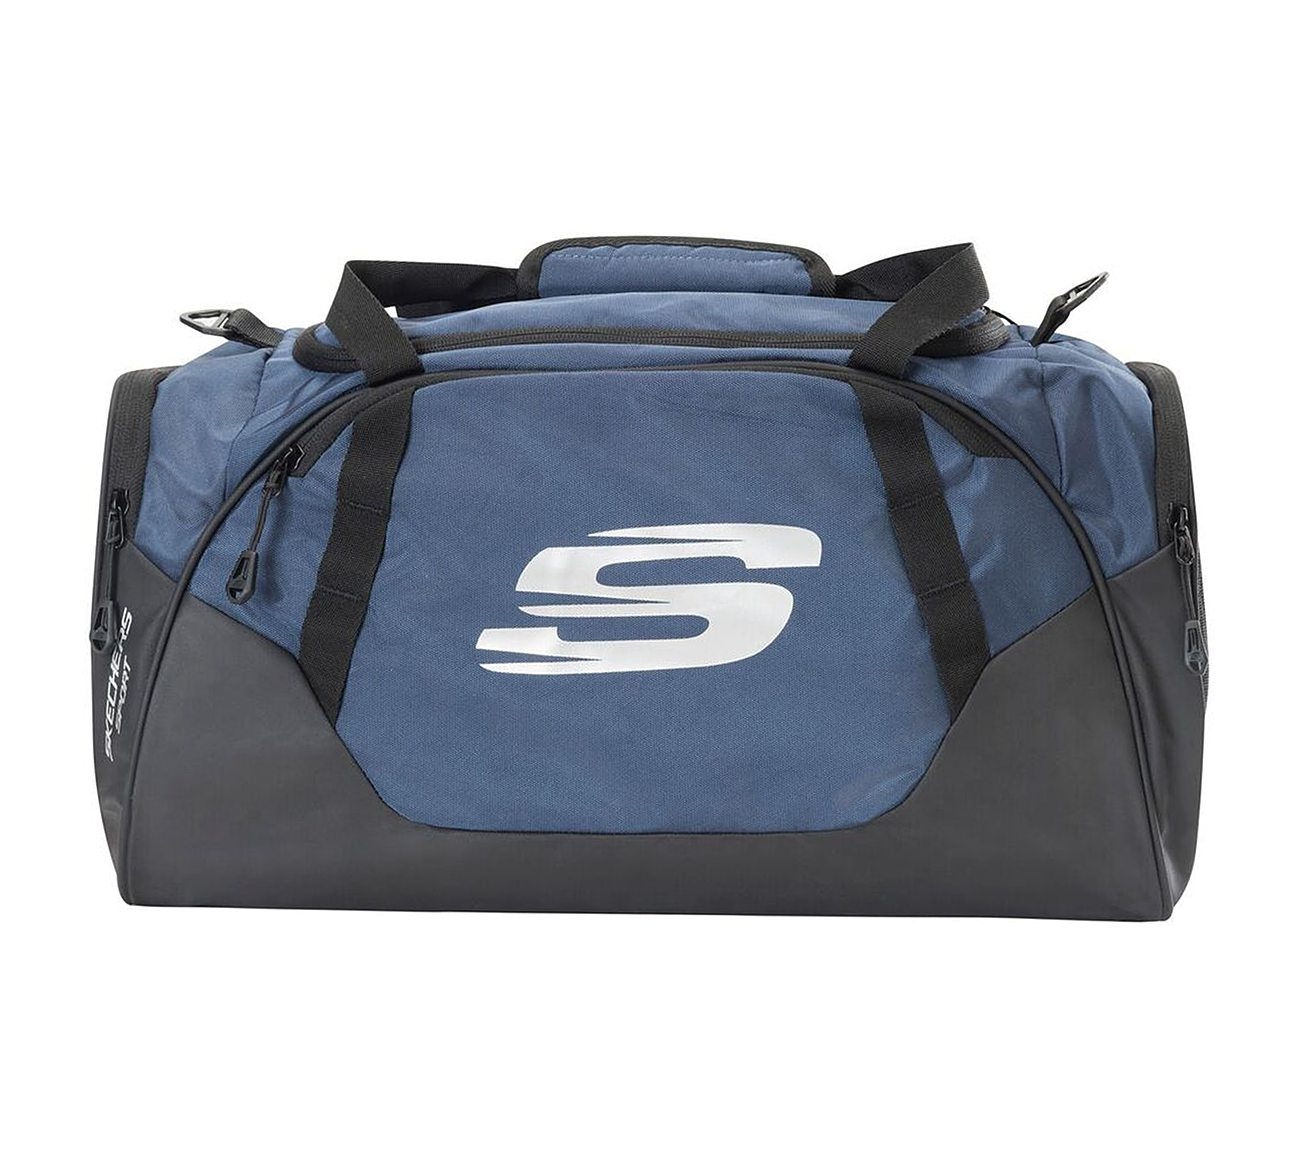 b68302f4cf Buy SKECHERS Force Duffel Bag Bags Shoes only $40.00